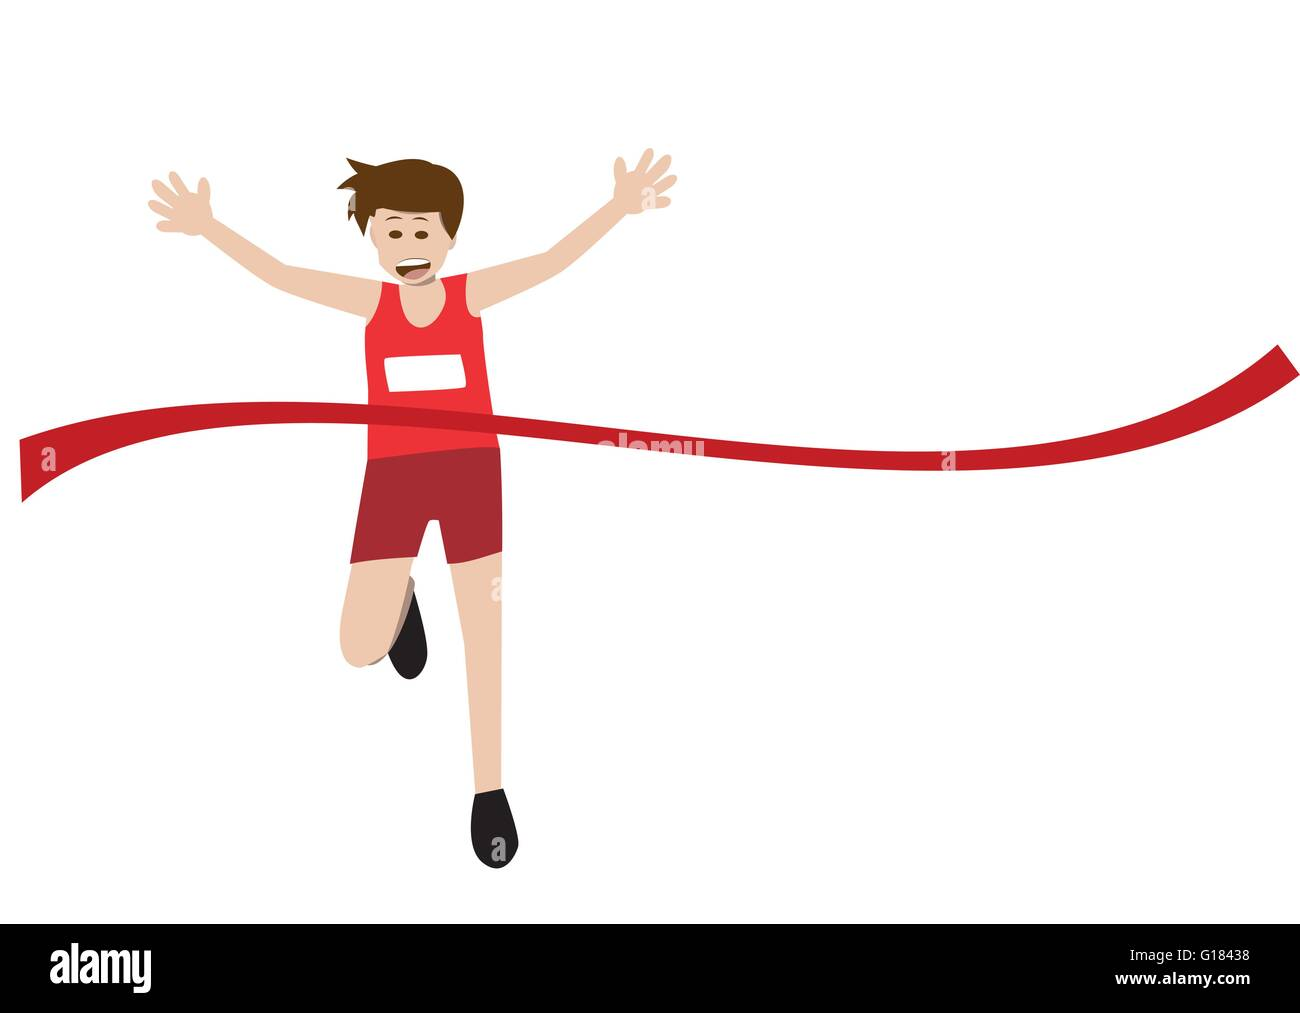 vector illustration of a runner athlete running and celebrates at finish line. eps 10 - Stock Vector